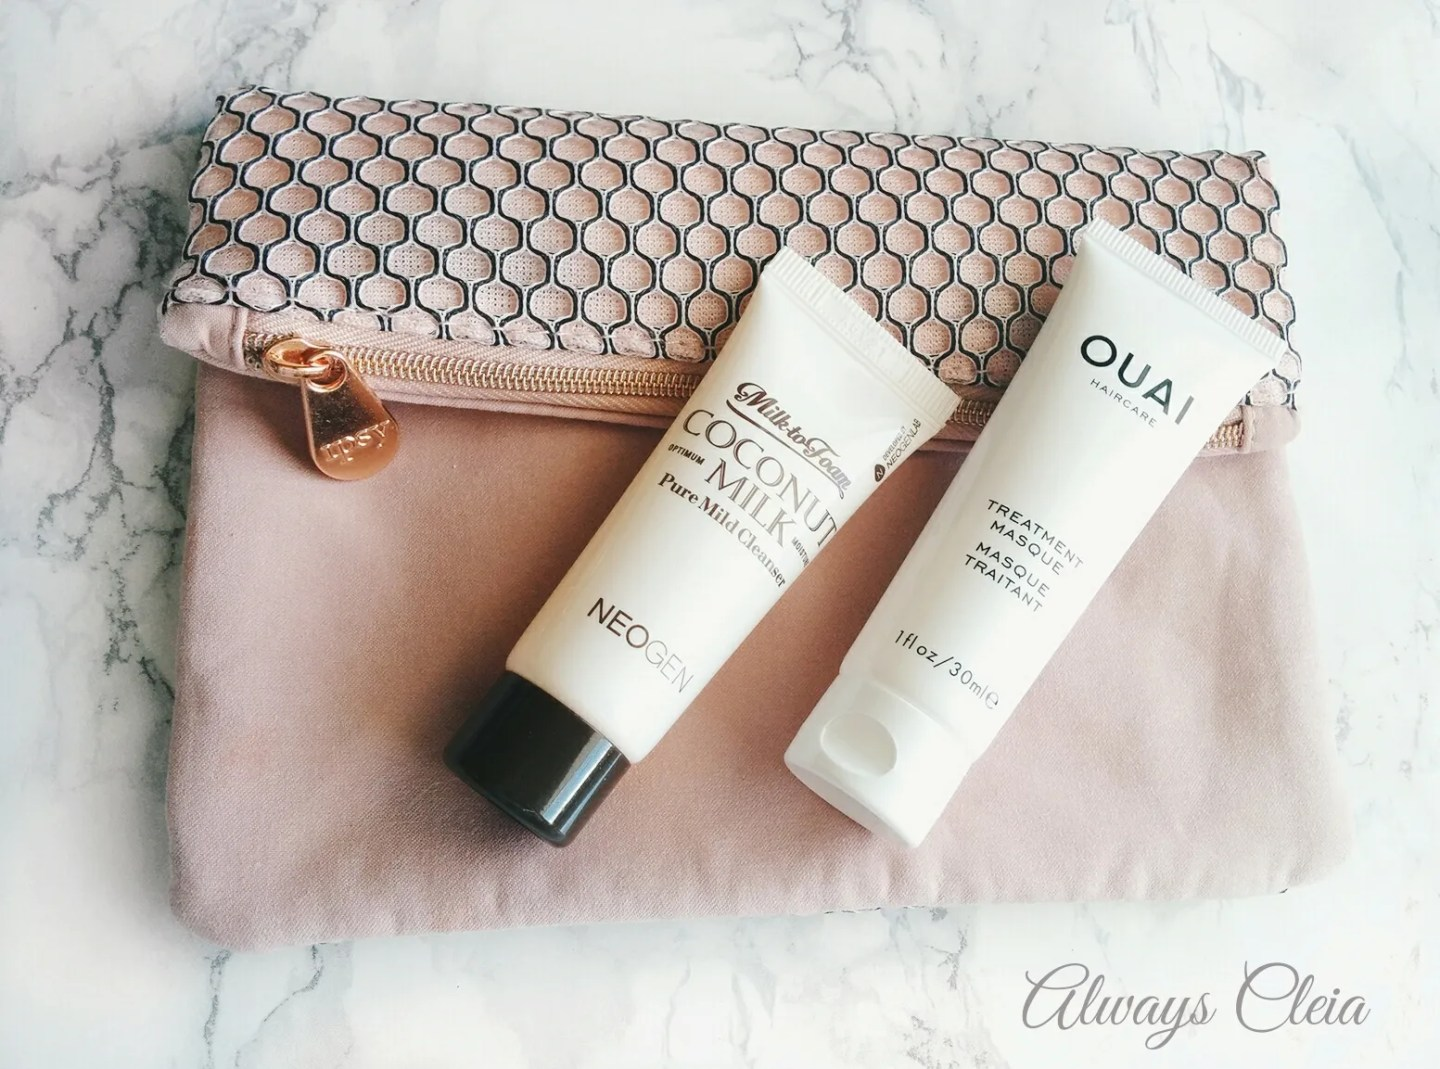 2017 March Ipsy Glam Bag - Neogen & Ouai